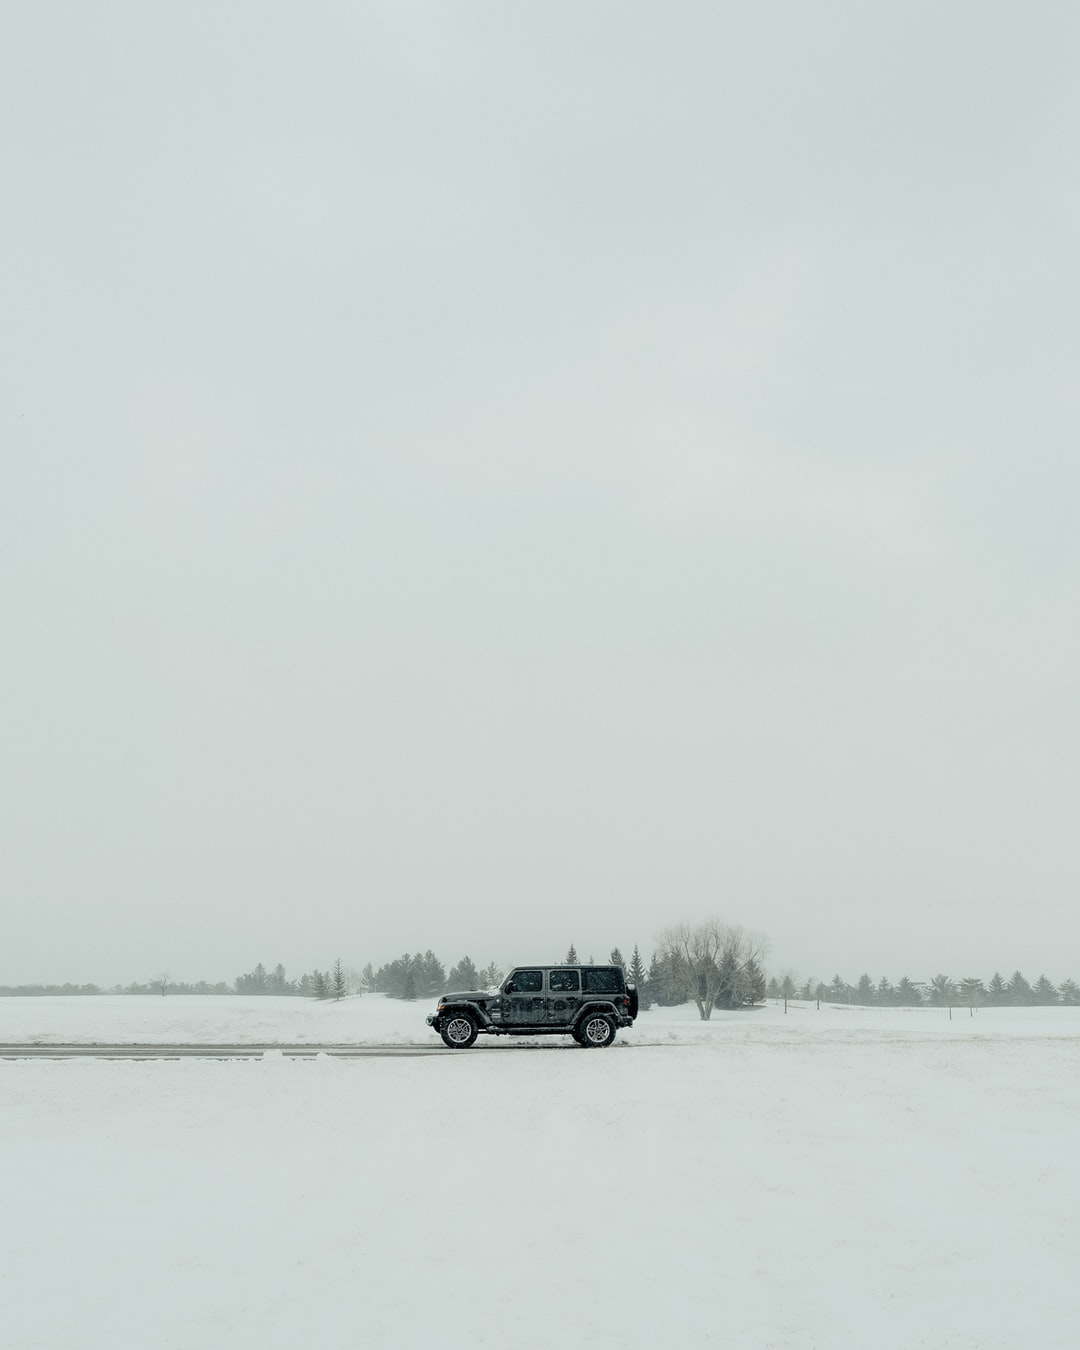 black suv on snow covered field during daytime